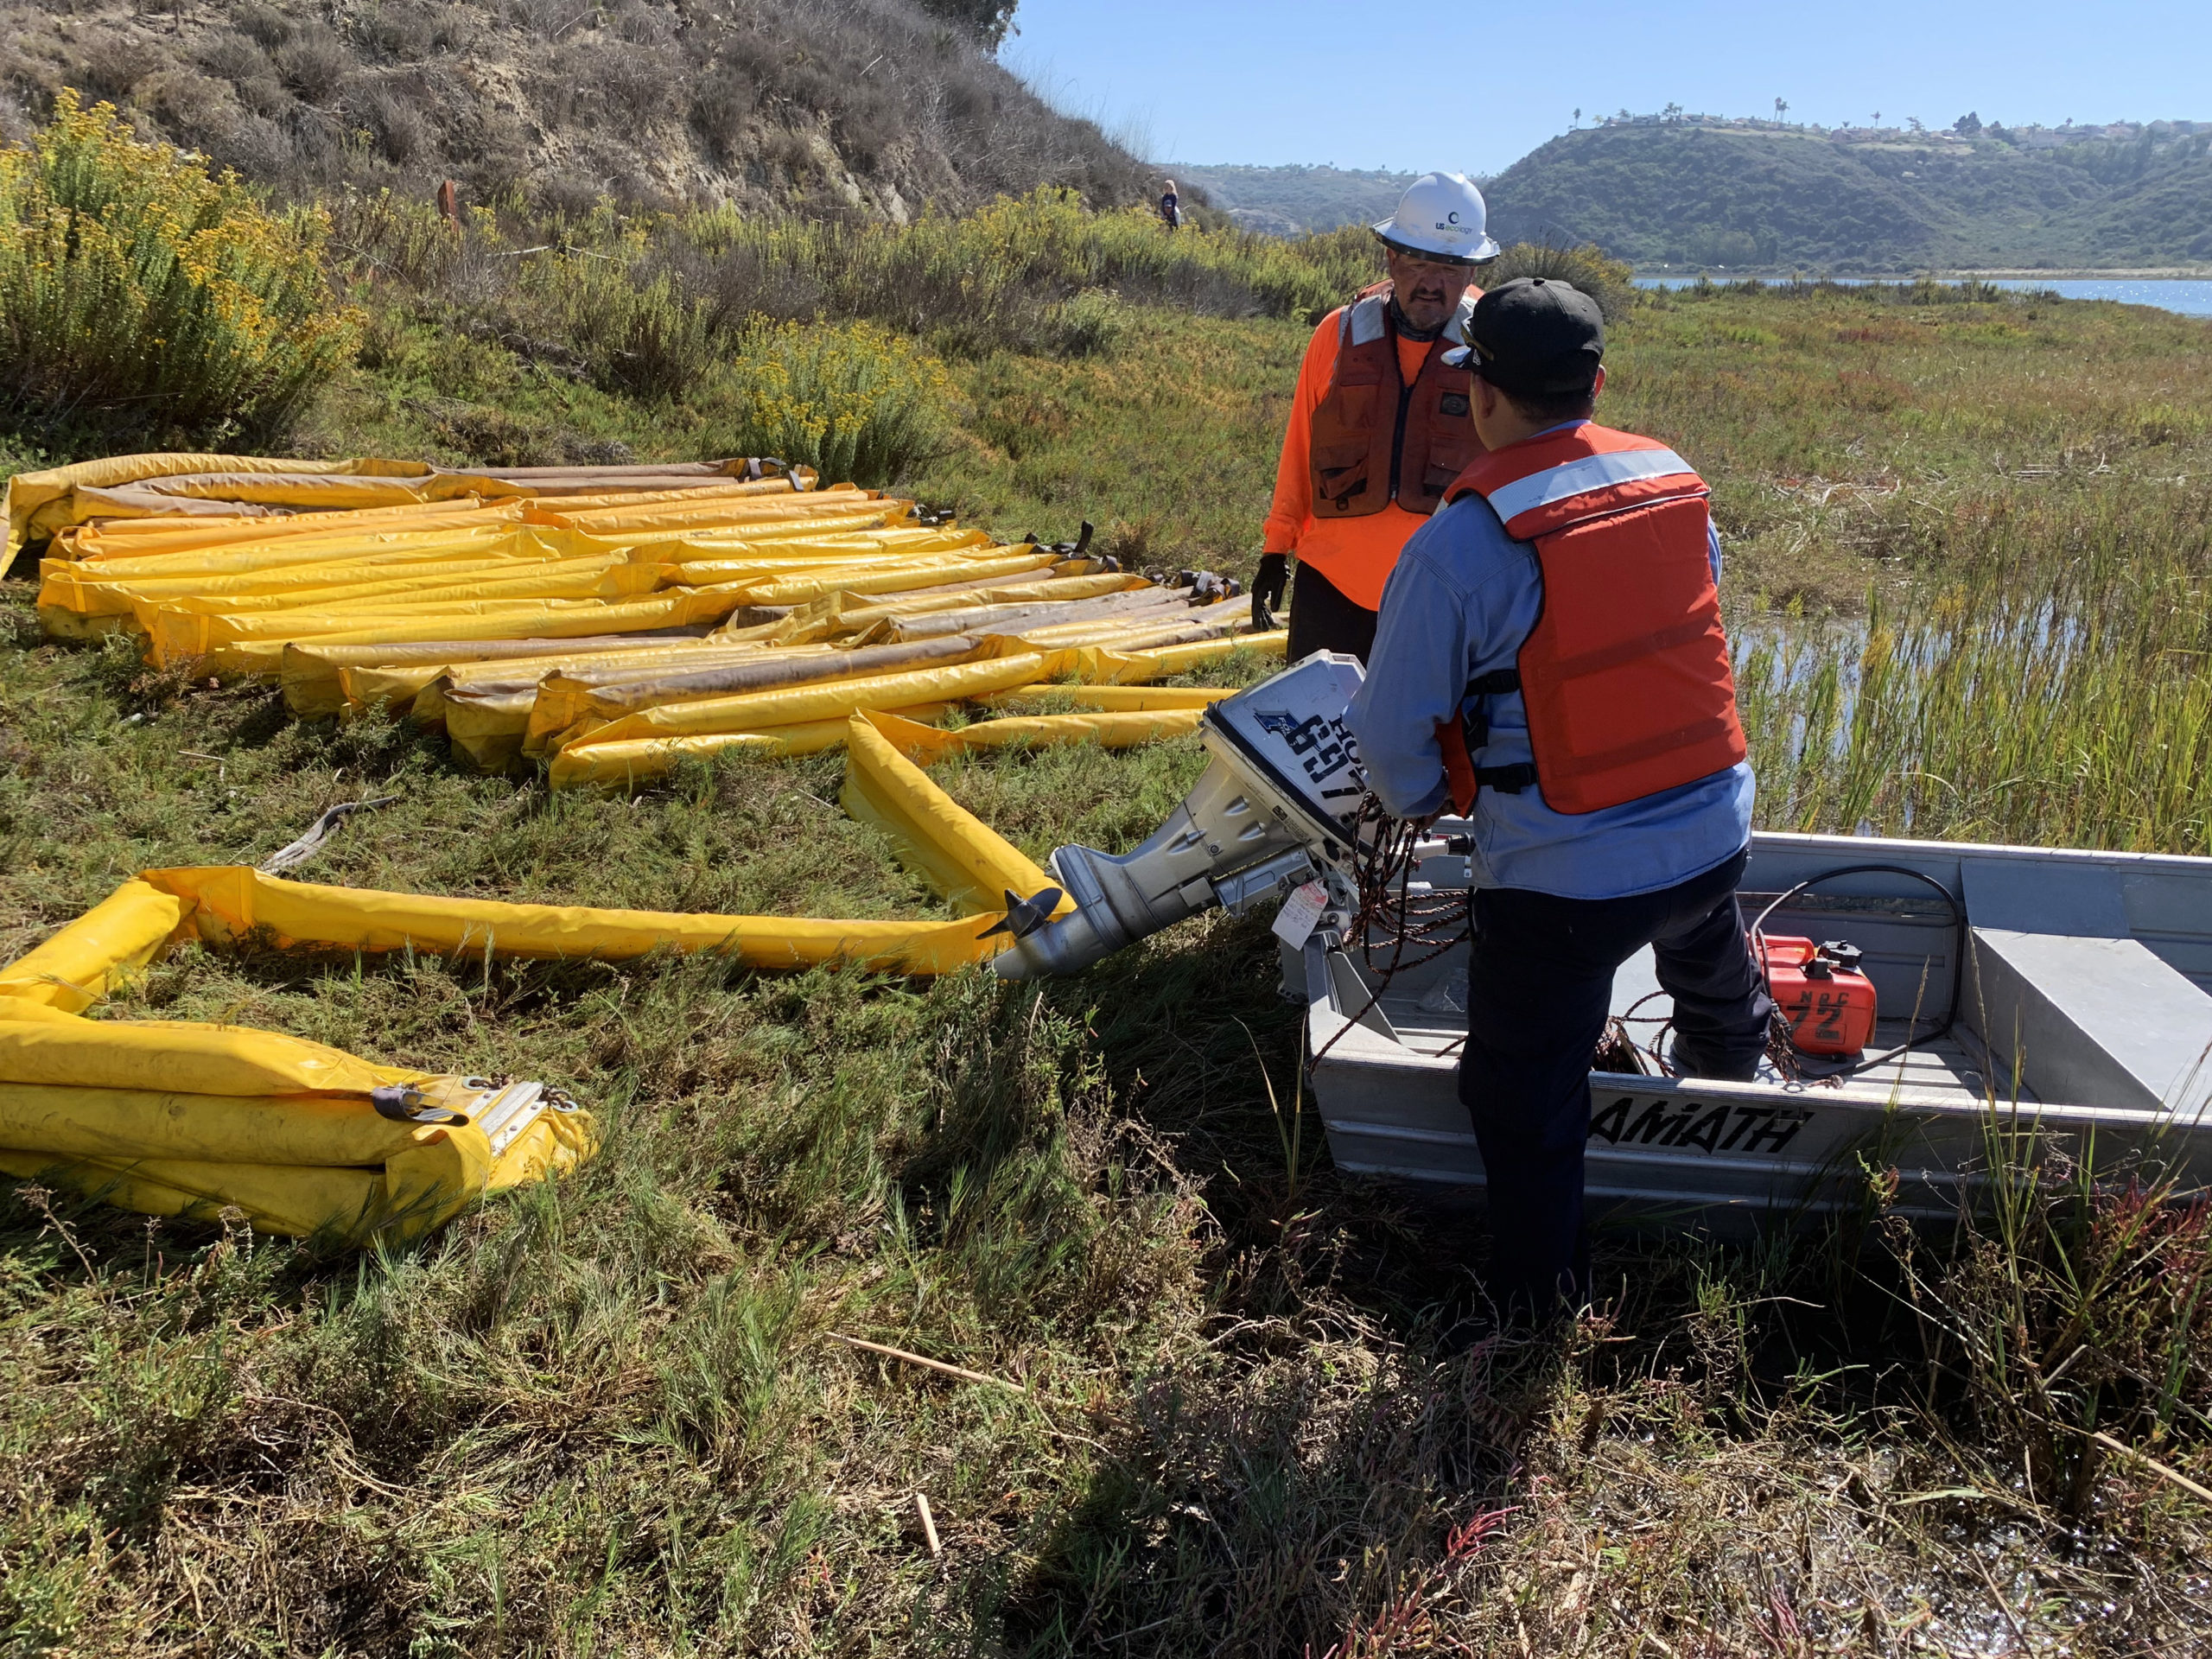 Contractors worked alongside federal, state and local partners to proactively deploy a boom